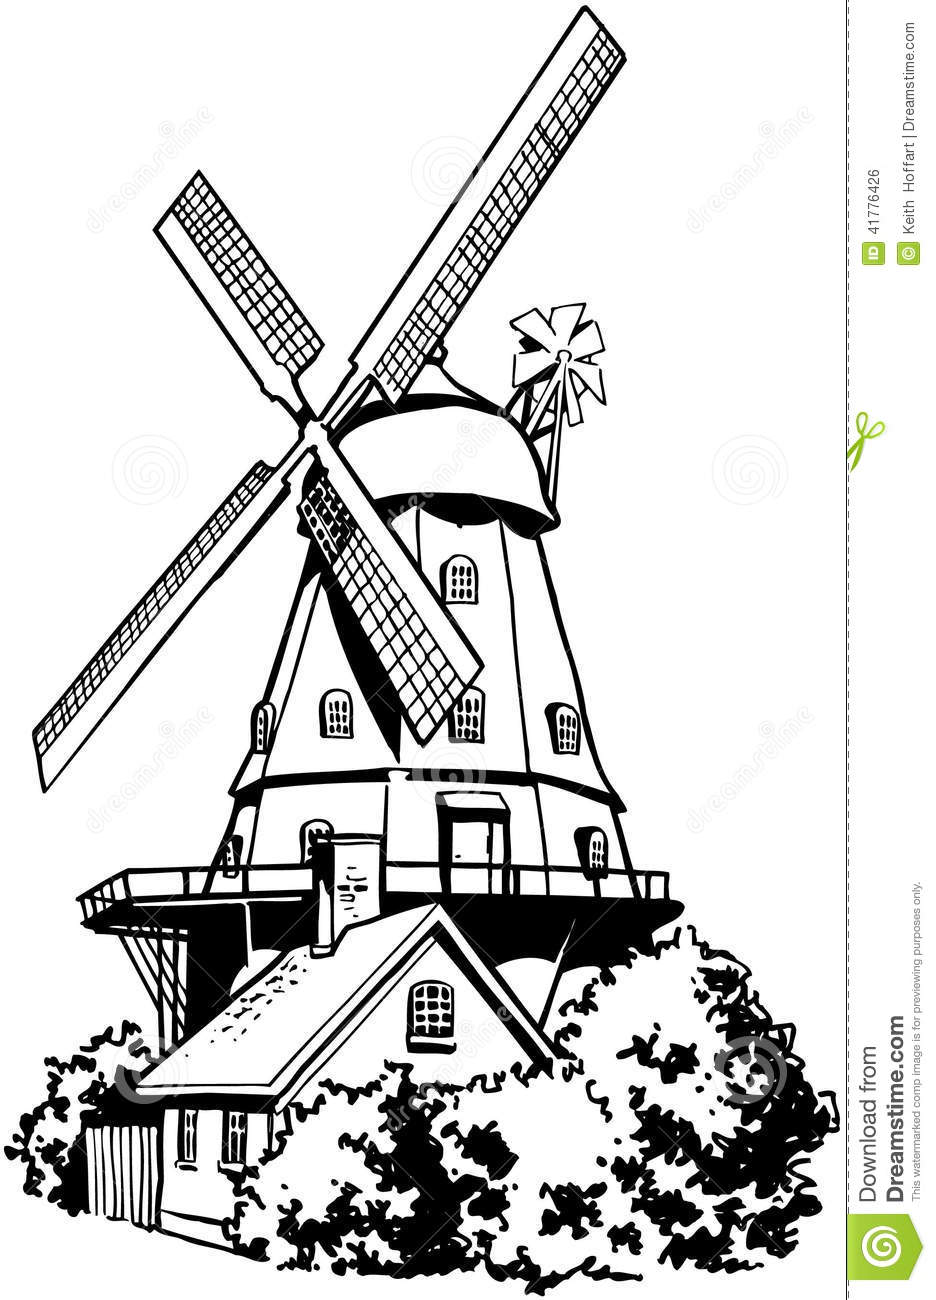 Windmill Vector Clipart created in Adobe Illustrator in EPS format for ...